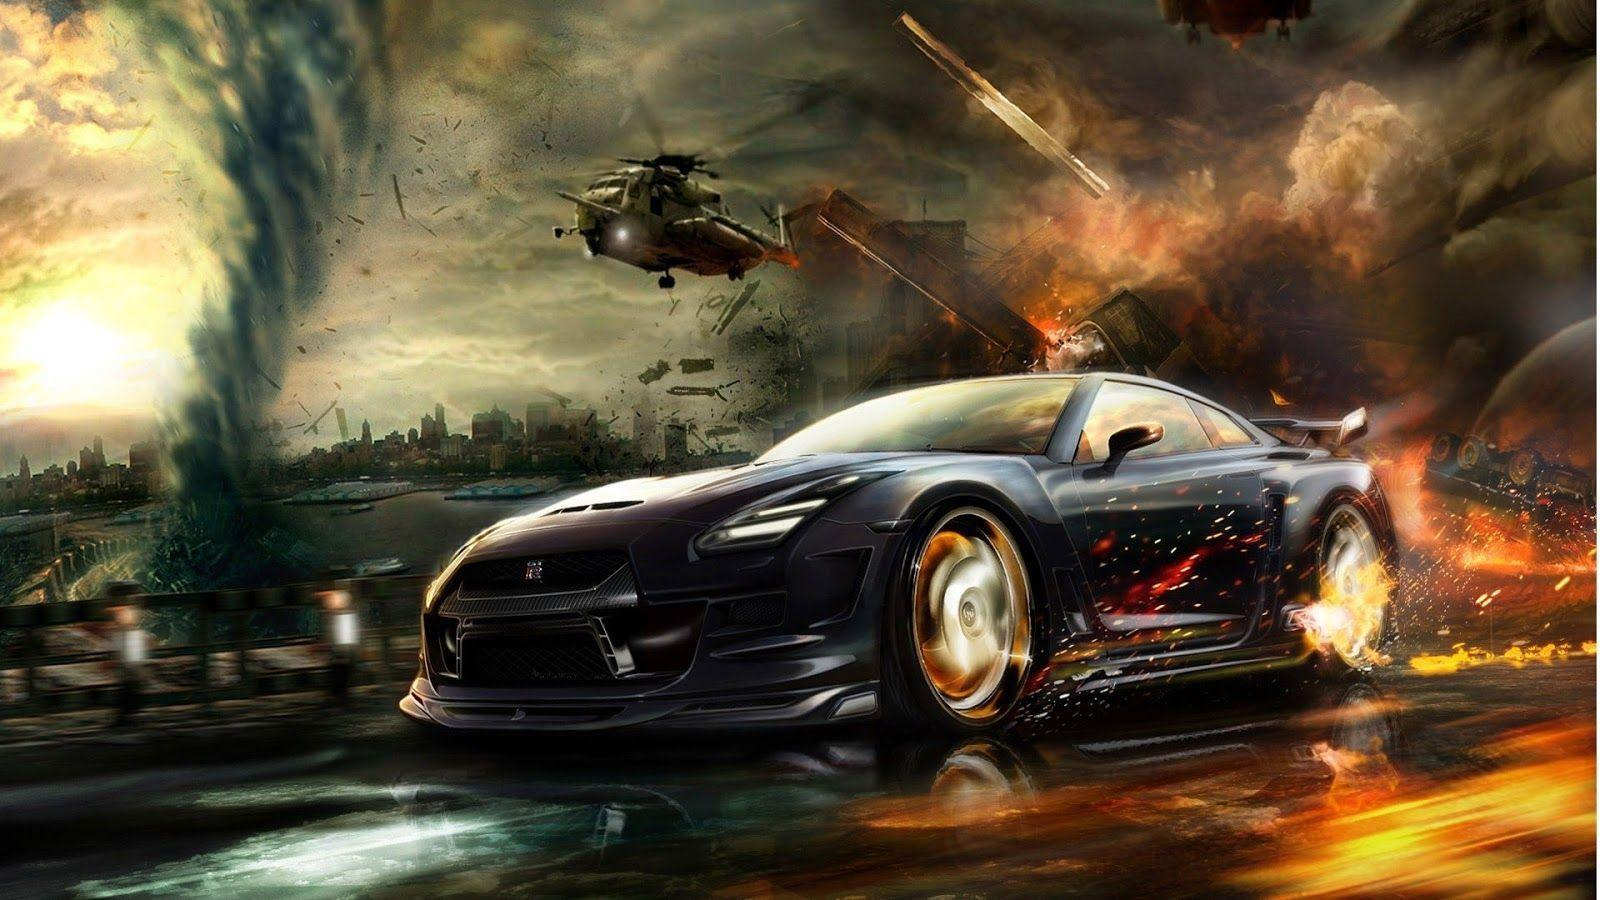 Cool Car Backgrounds Wallpapers Wallpaper Cave